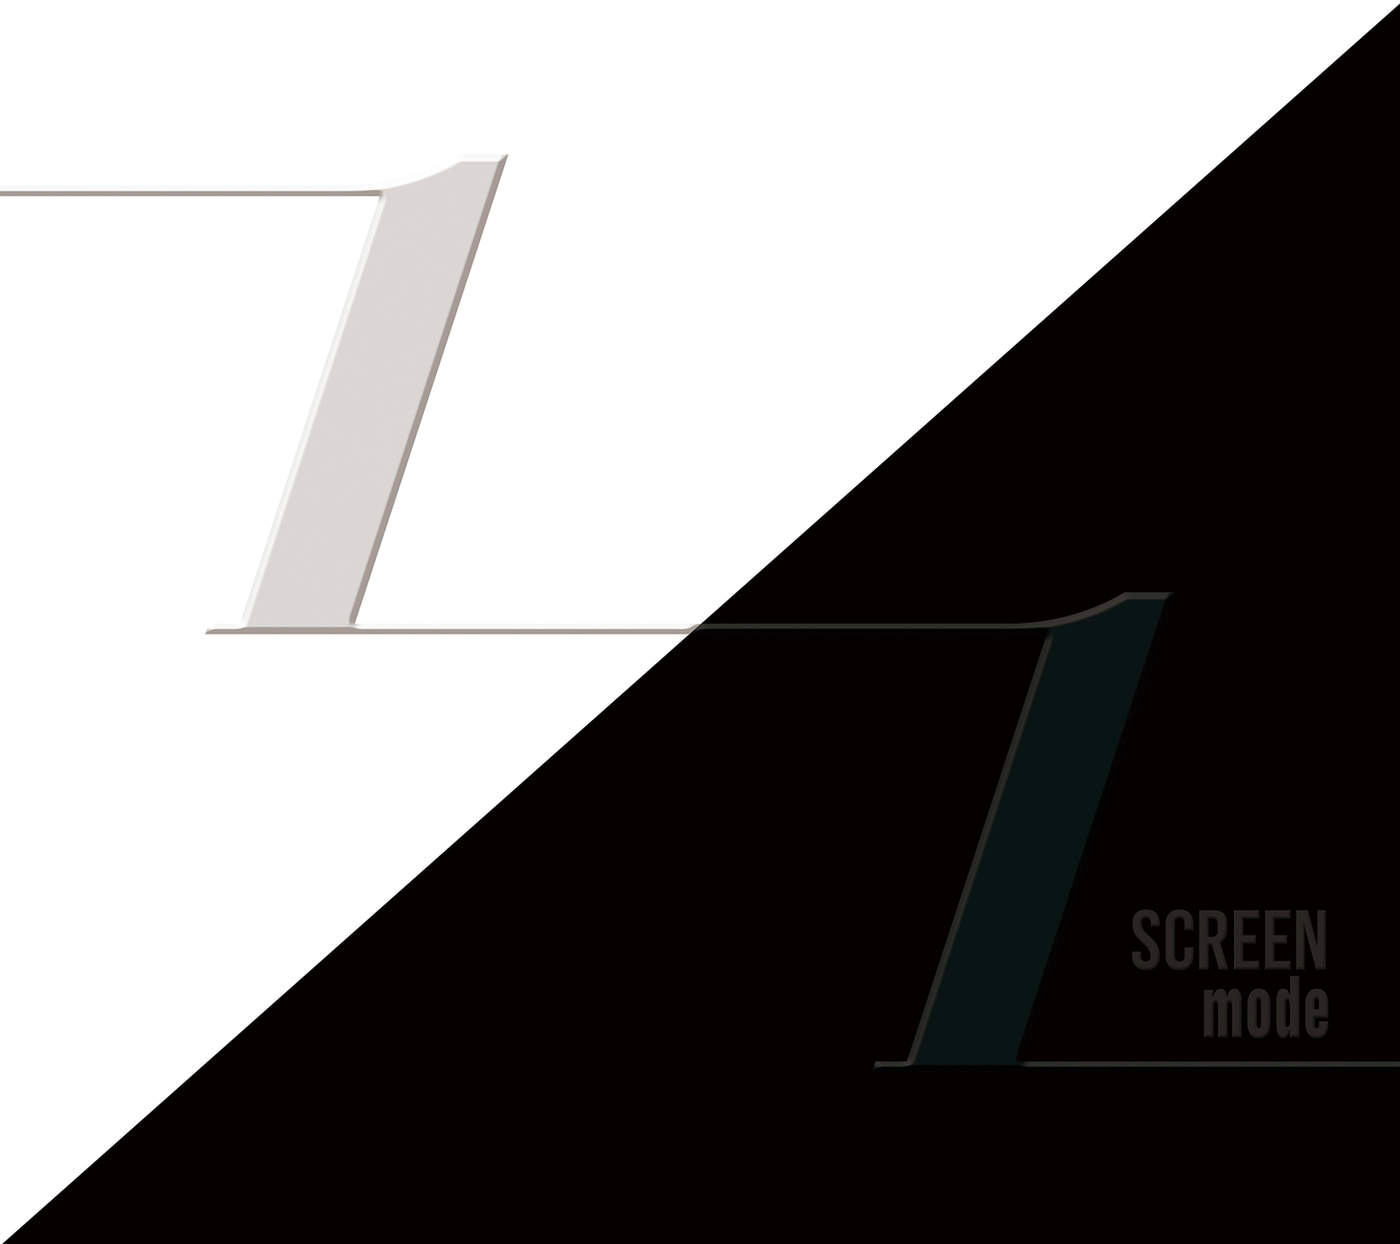 SCREEN mode – 1/1